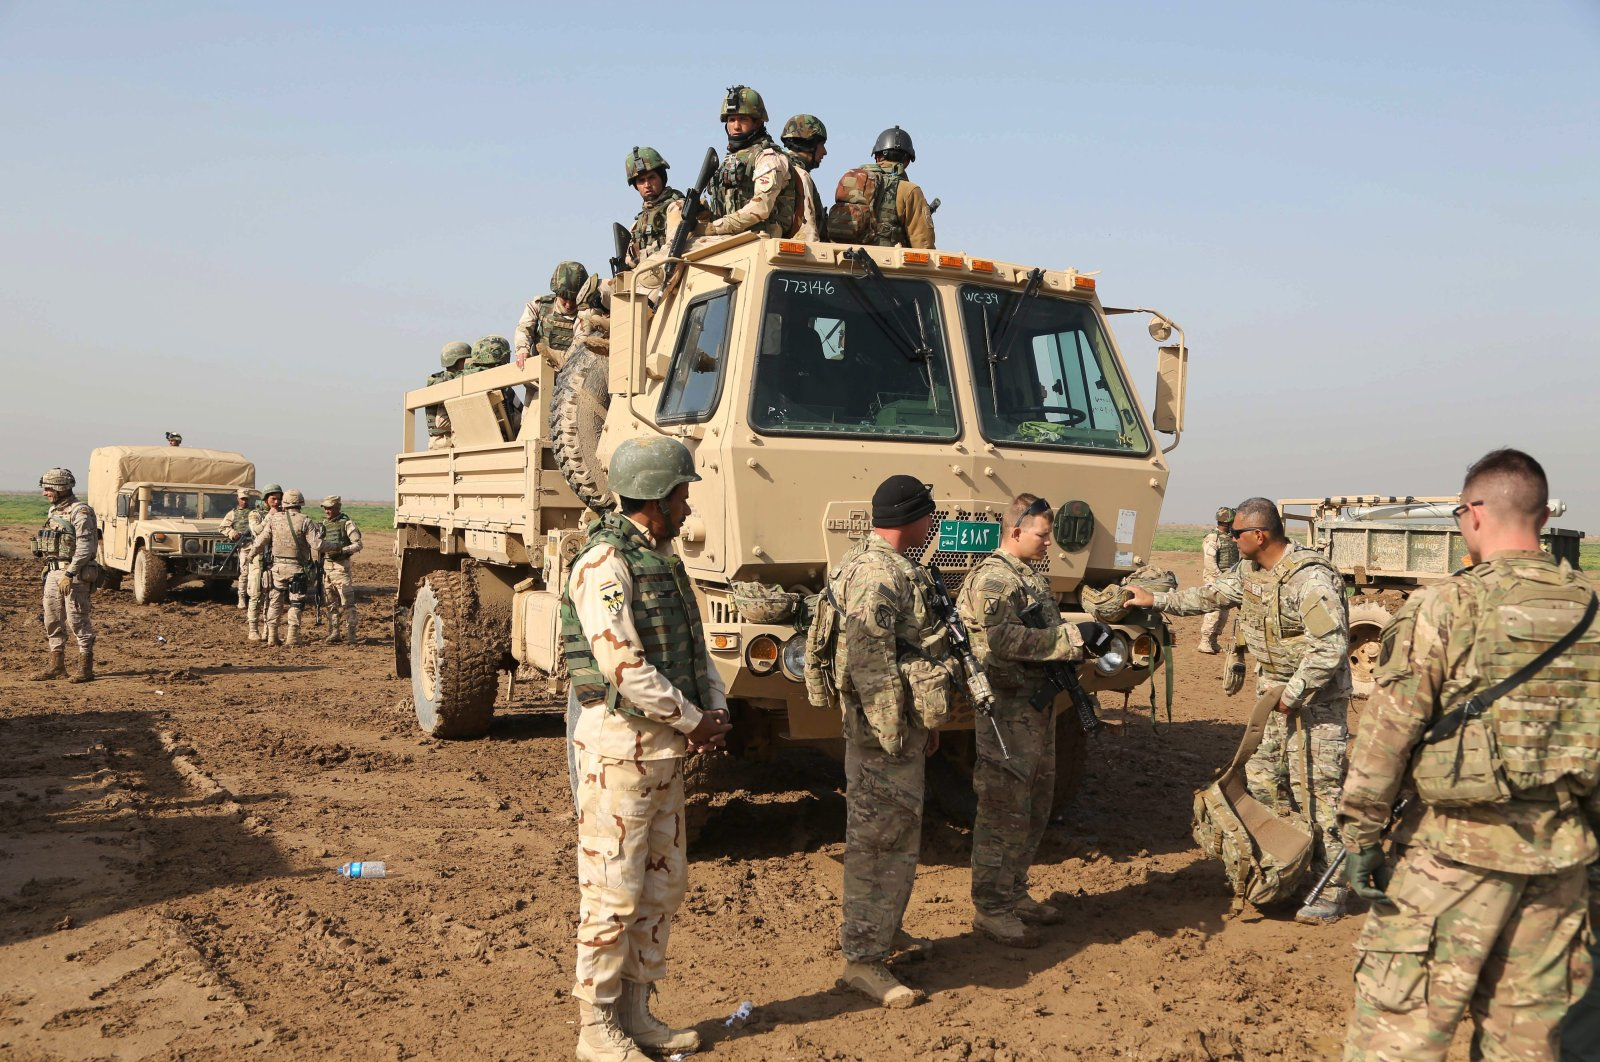 Iraqi soldiers participate in a training exercise with American and Spanish trainers at Basmaya base, 40 kilometers southeast of Baghdad, Jan. 24, 2016. (AP Photo)